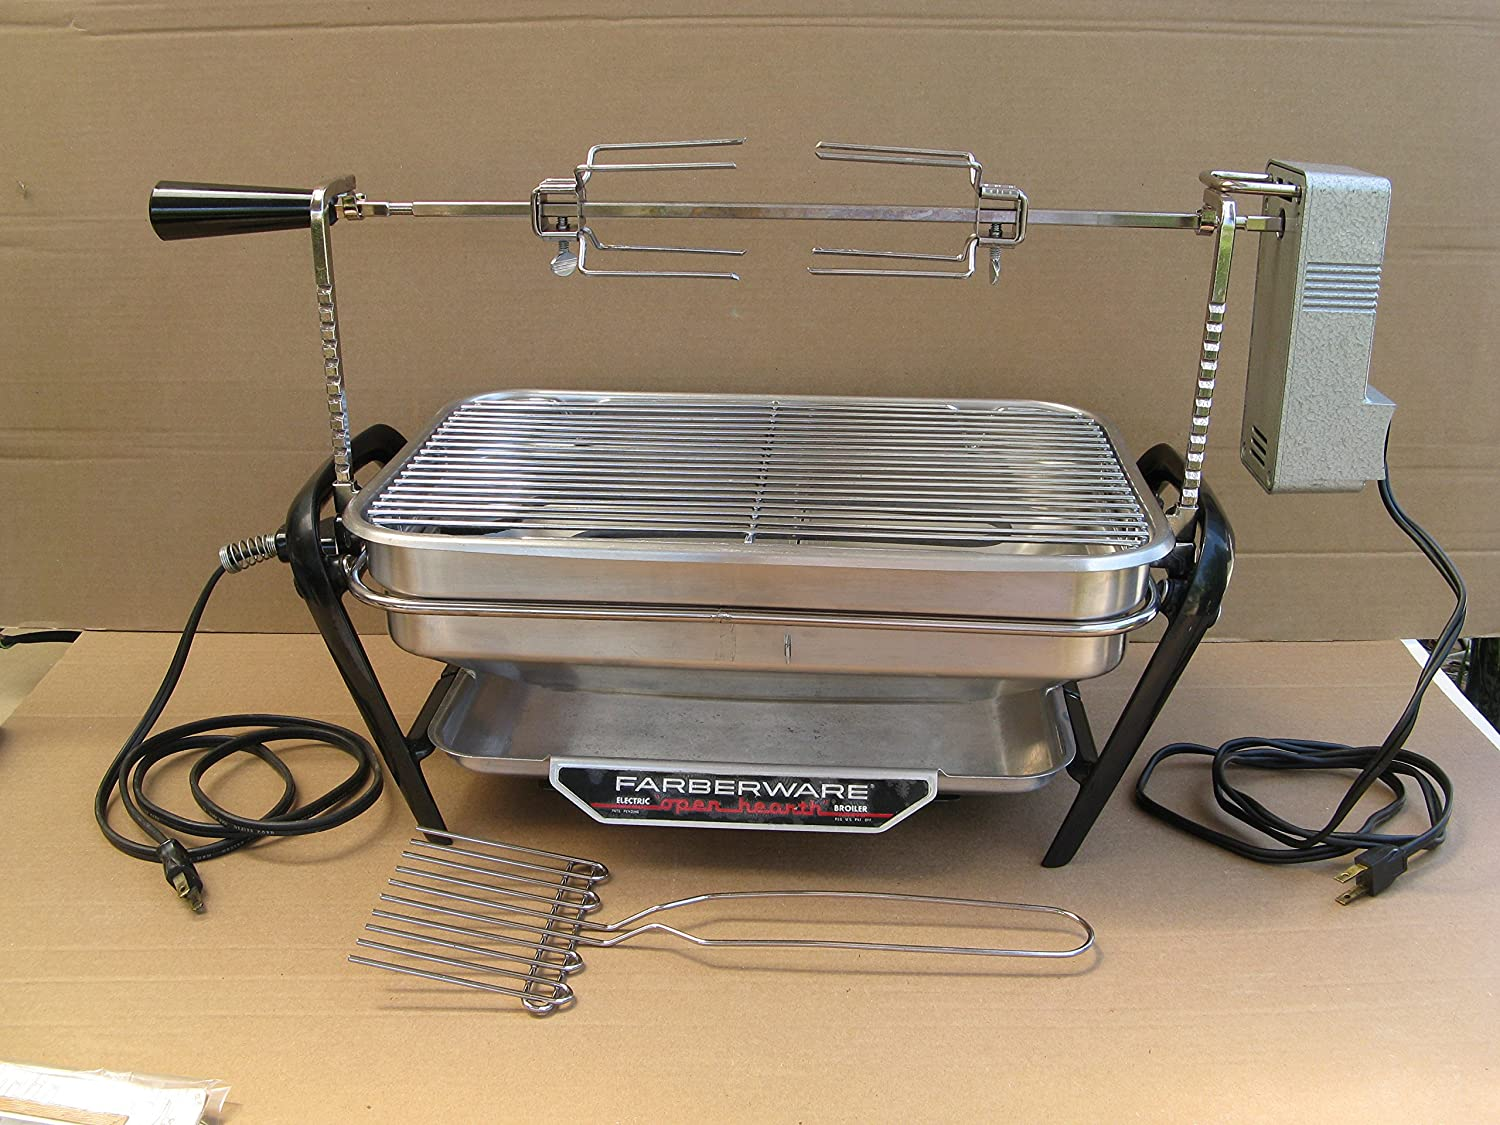 Farberware Open Hearth Broiler & Rotisserie